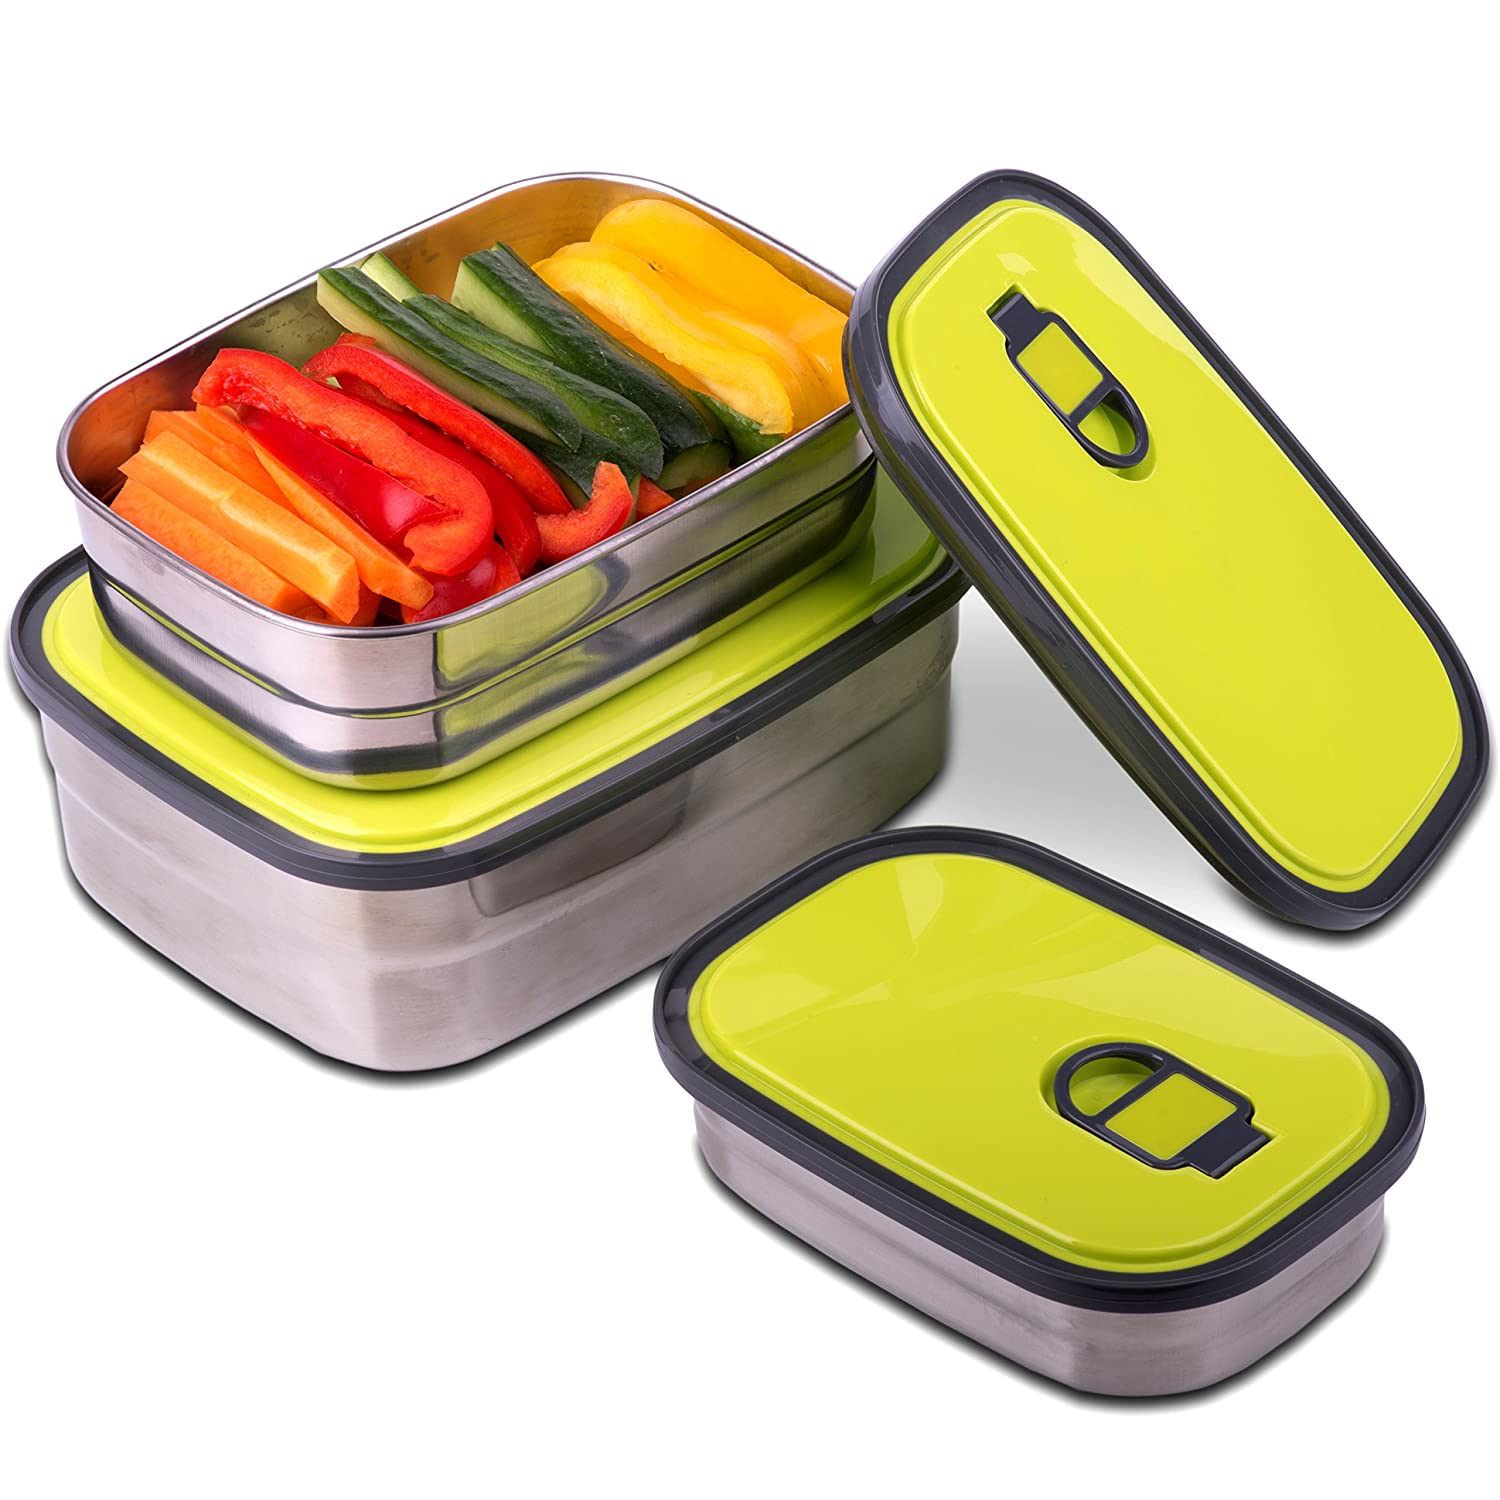 Reusable Food Containers Set of 3 - Lightweight, Durable, Multi-Use Stainless Steel Leak Proof Lunch Box with Airtight Lid - BPA-Free and Toxin-Free, Eco Friendly Storage Containers by Kitchen Star